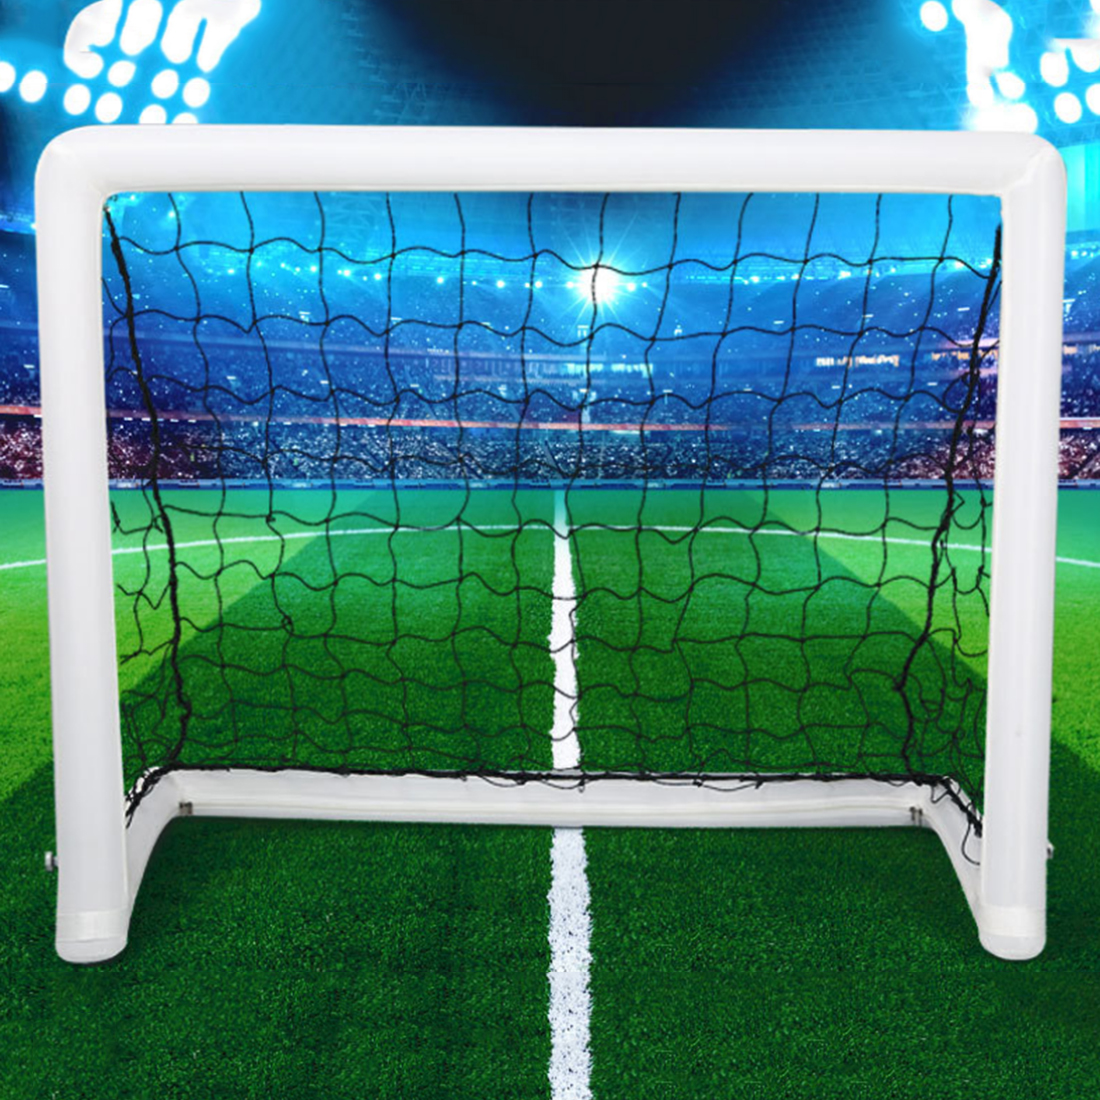 Inflatable Children's Football Gate Kids Soccer Door Goal Folding Portable Ultralight In-and-out Soccer Training Toys folding soccer goal portable child pop up soccer goals for kids sports training backyard playground outdoor sports high quality